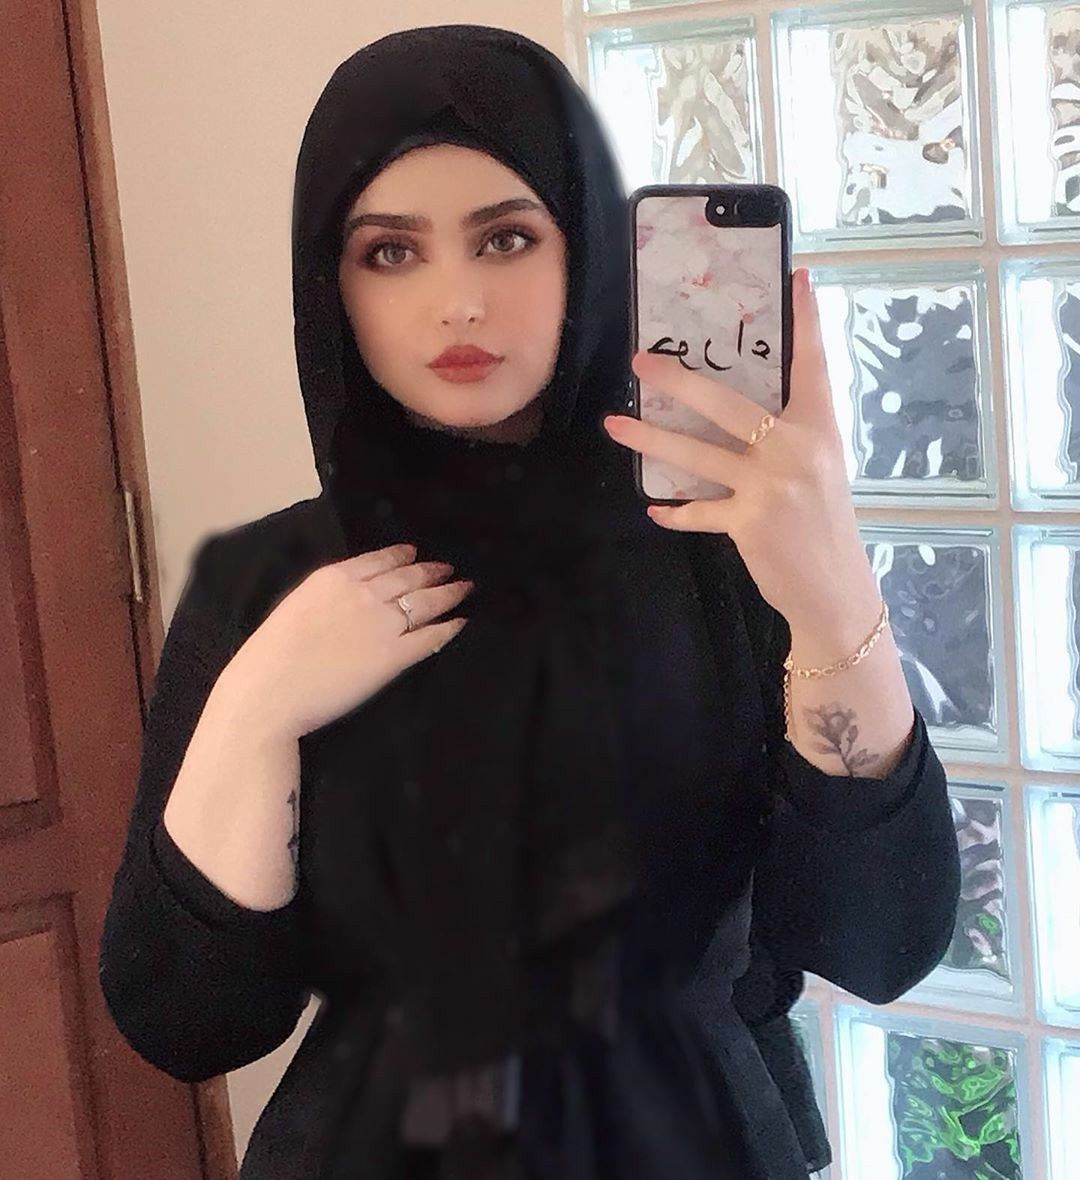 Pin On Middle Eastern Girls